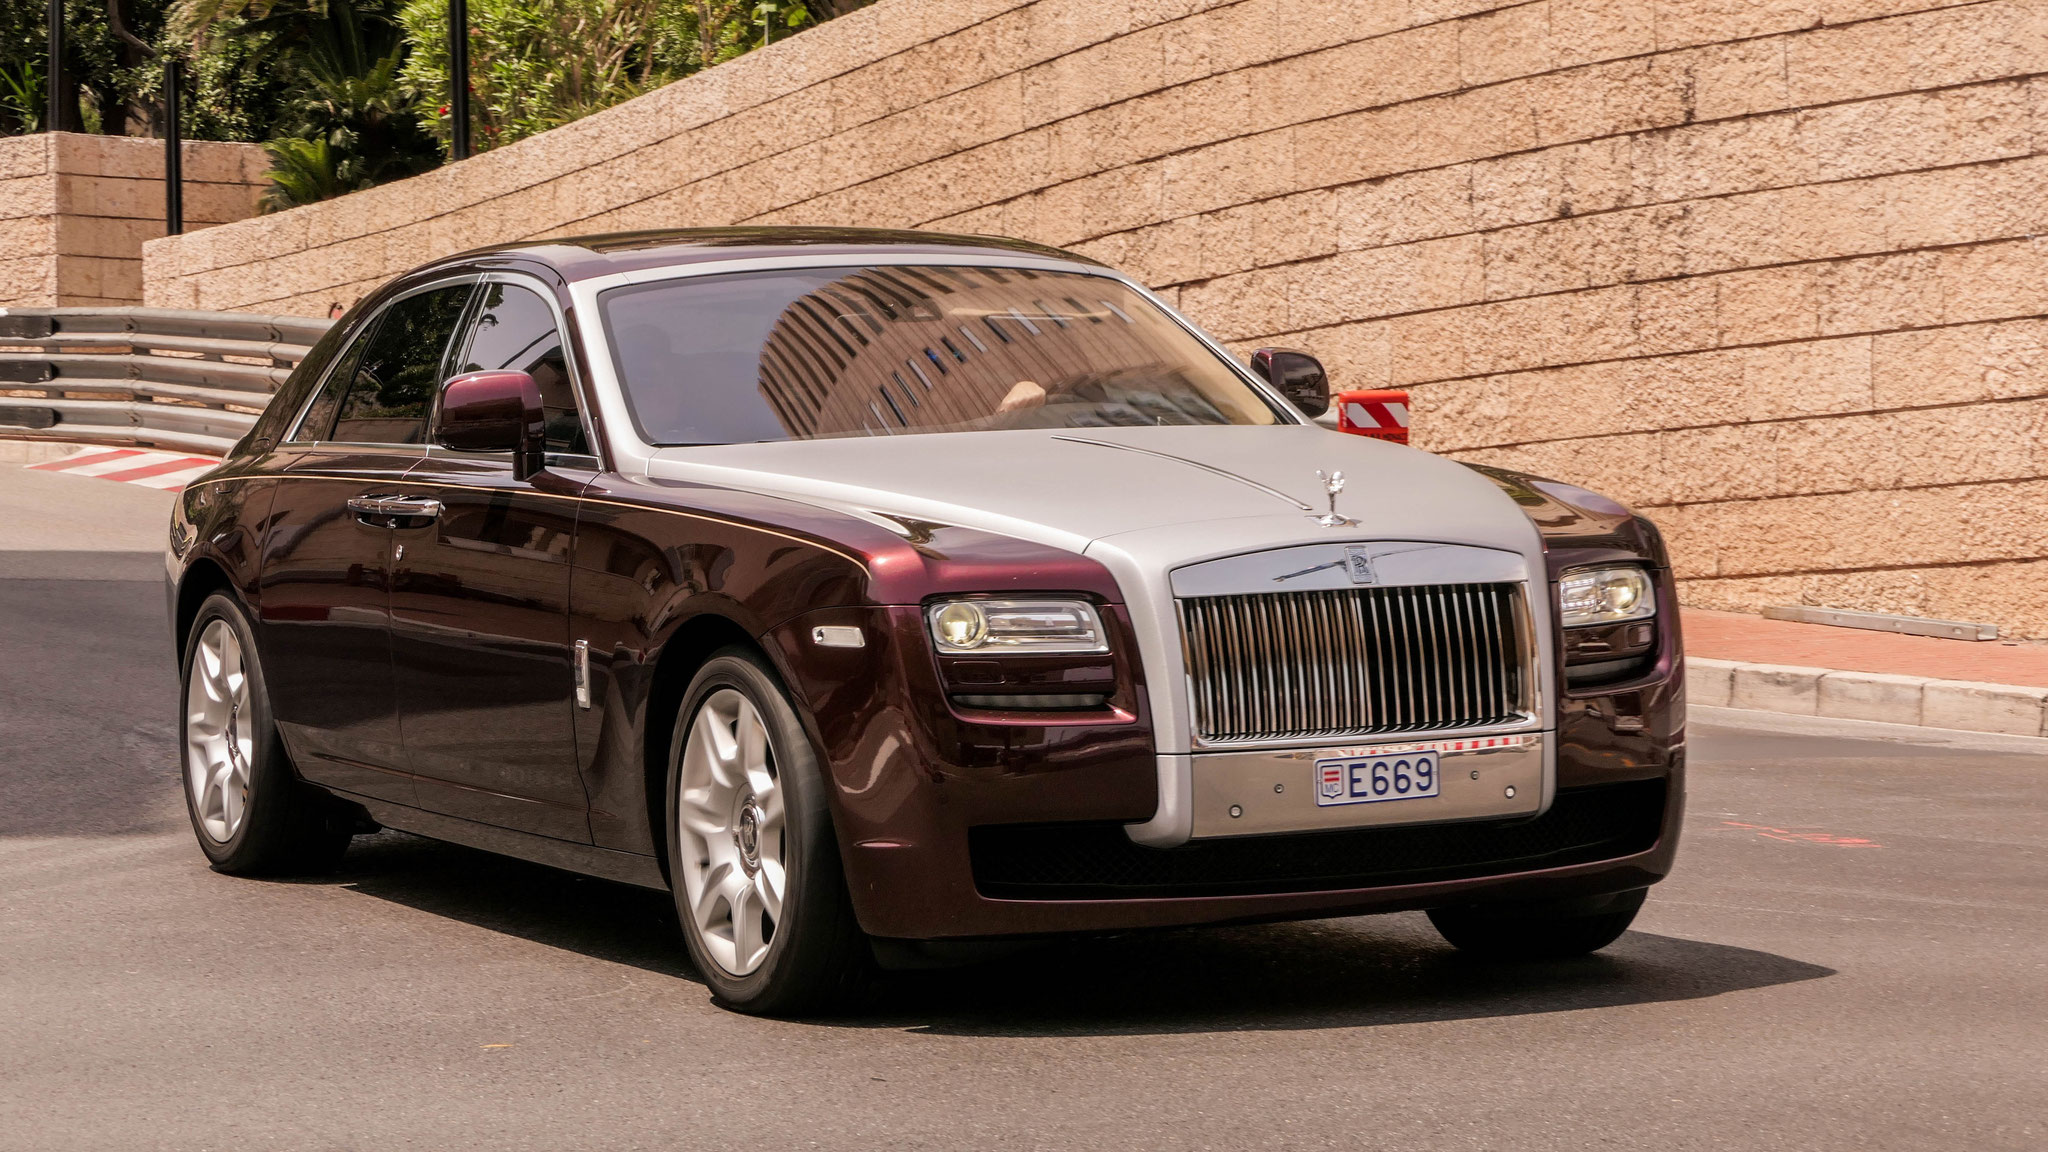 Rolls Royce Ghost - E669 (MC)